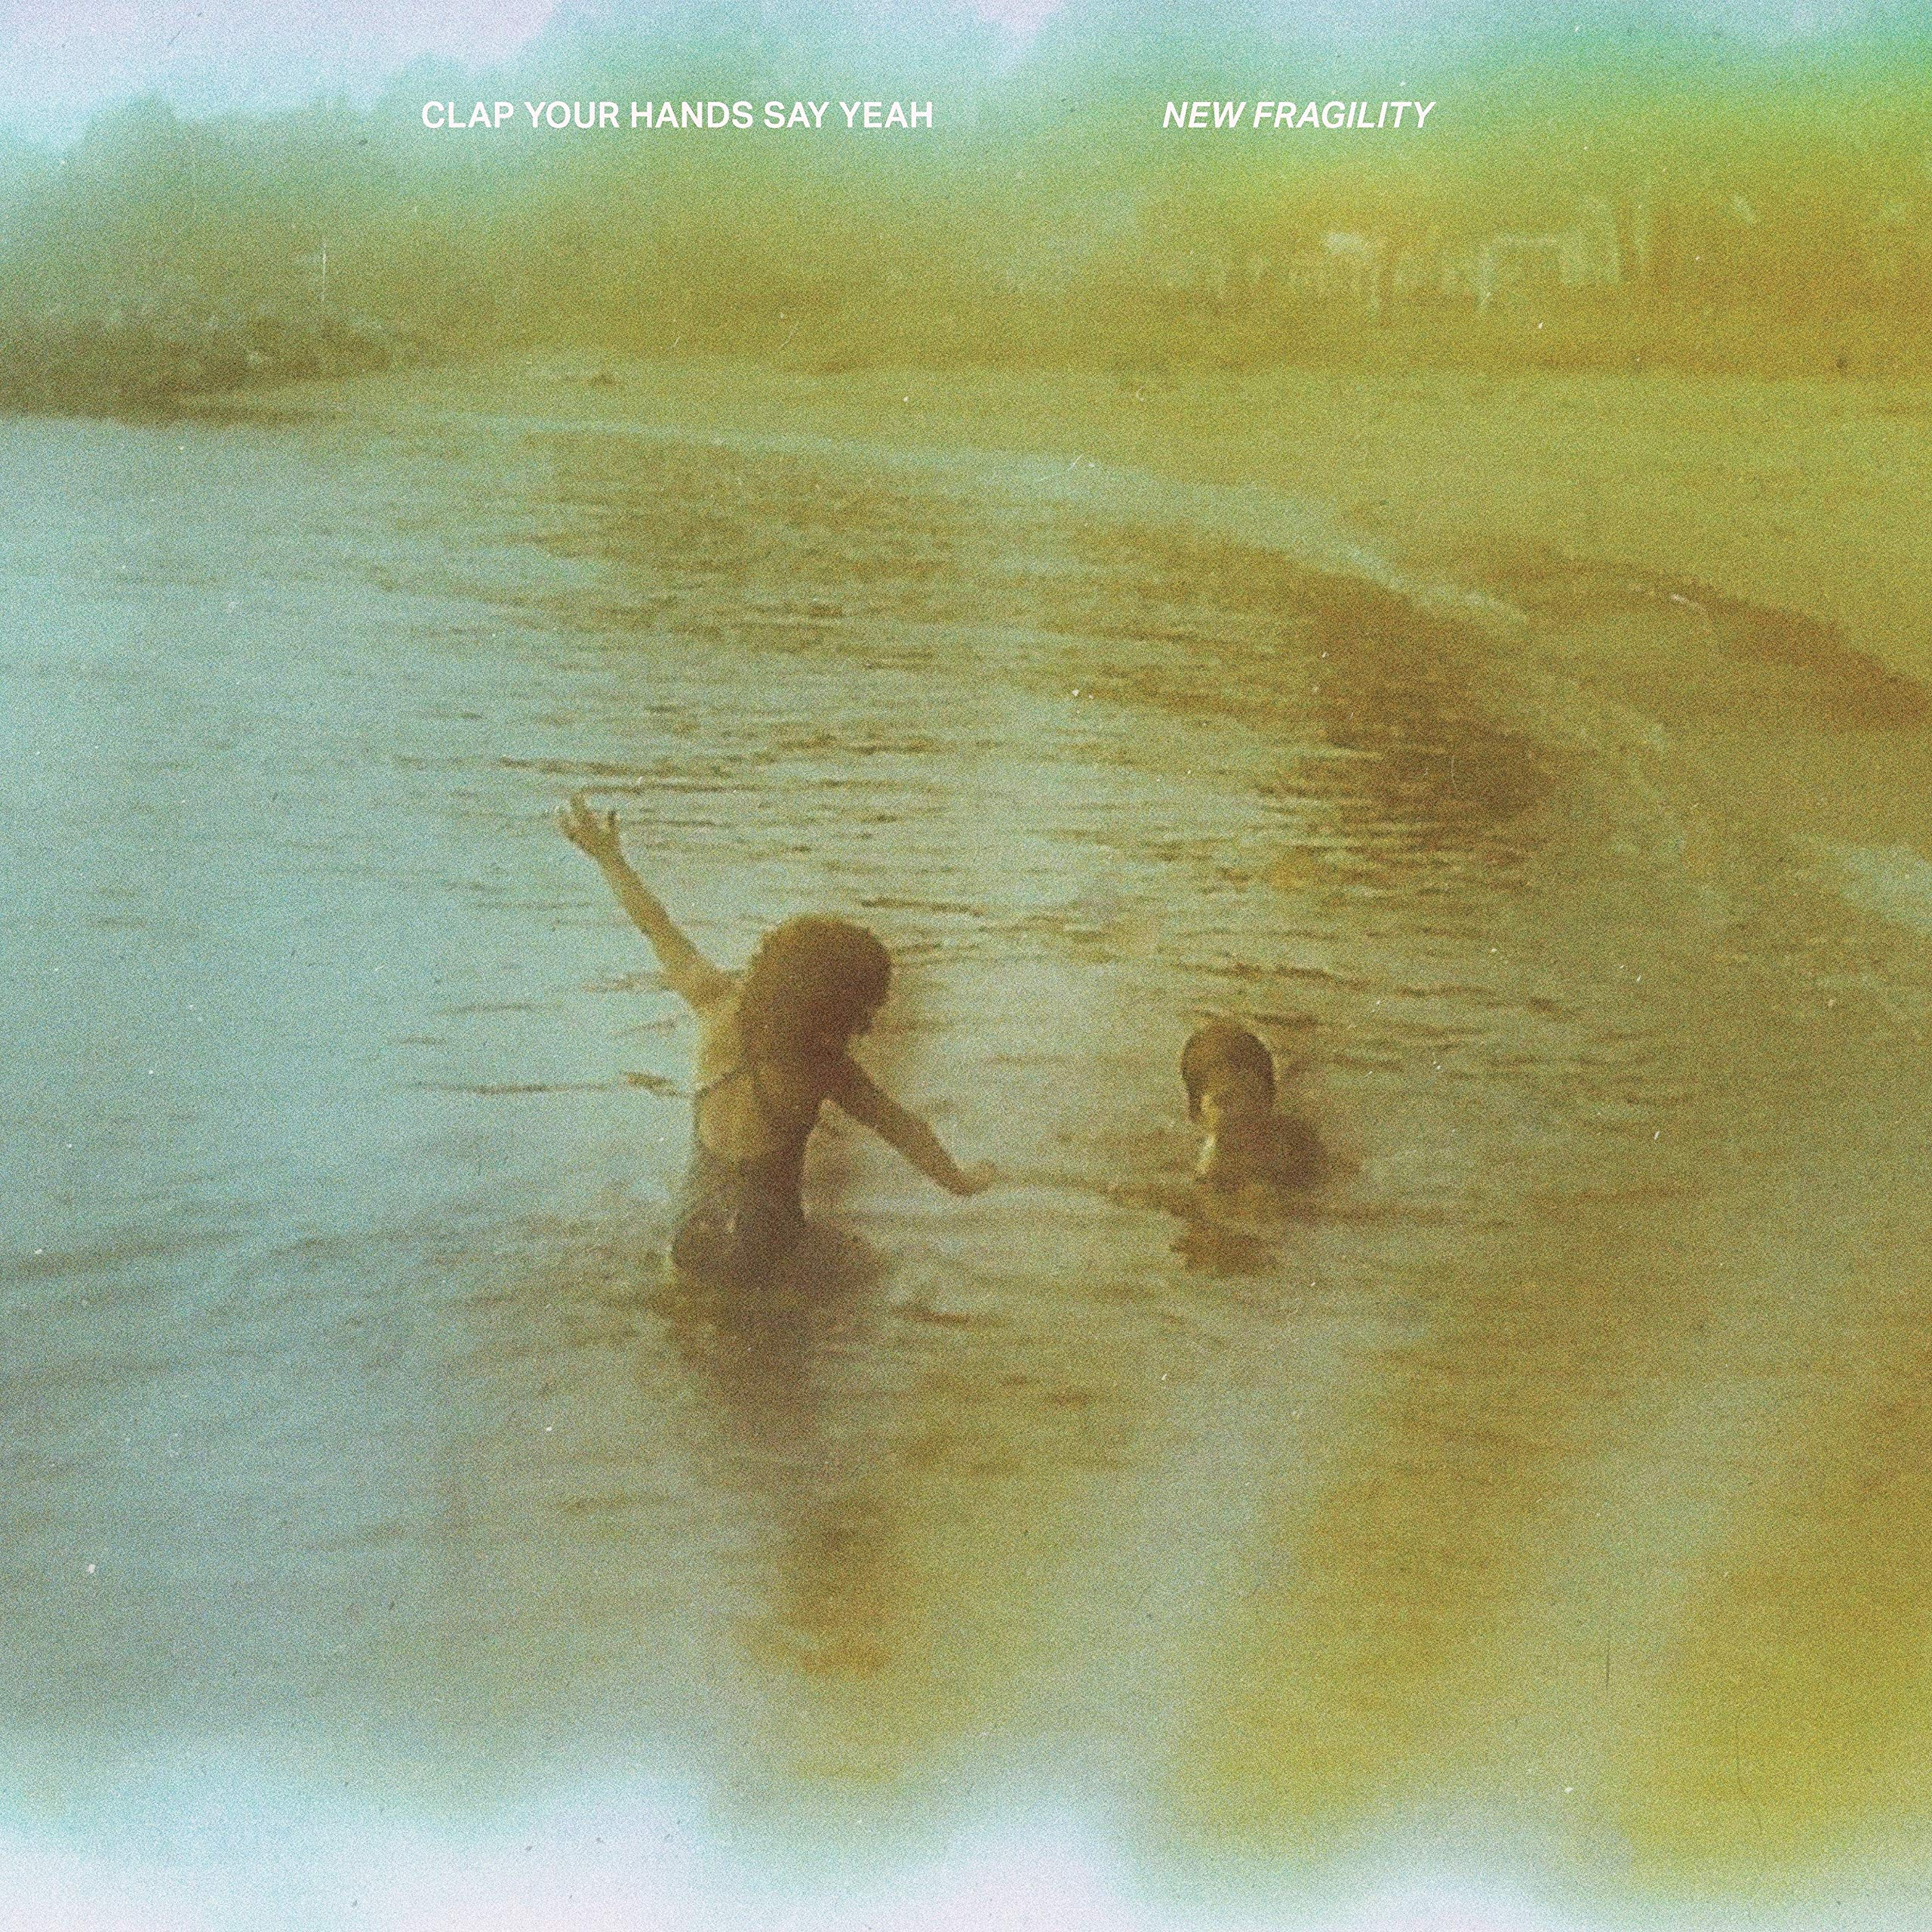 Clap Your Hands Say Yeah - New Fragility (2021) [FLAC] Download